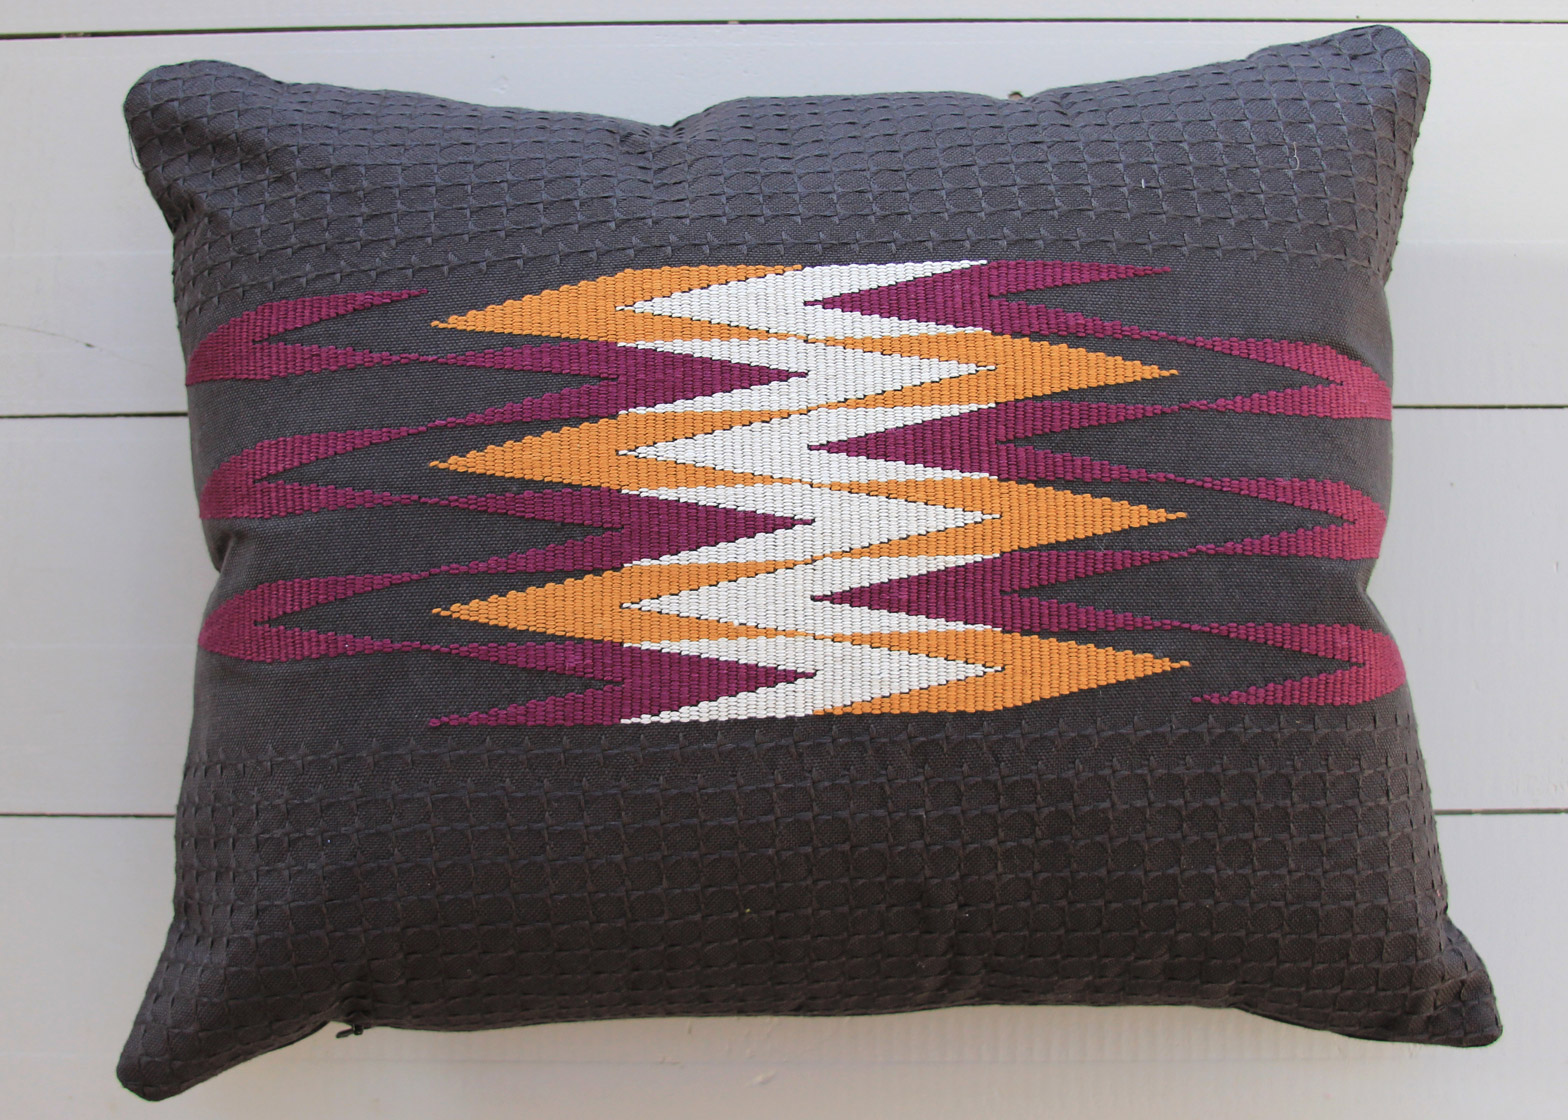 Handwoven cushion by Zohreh Adle-Ghadjar